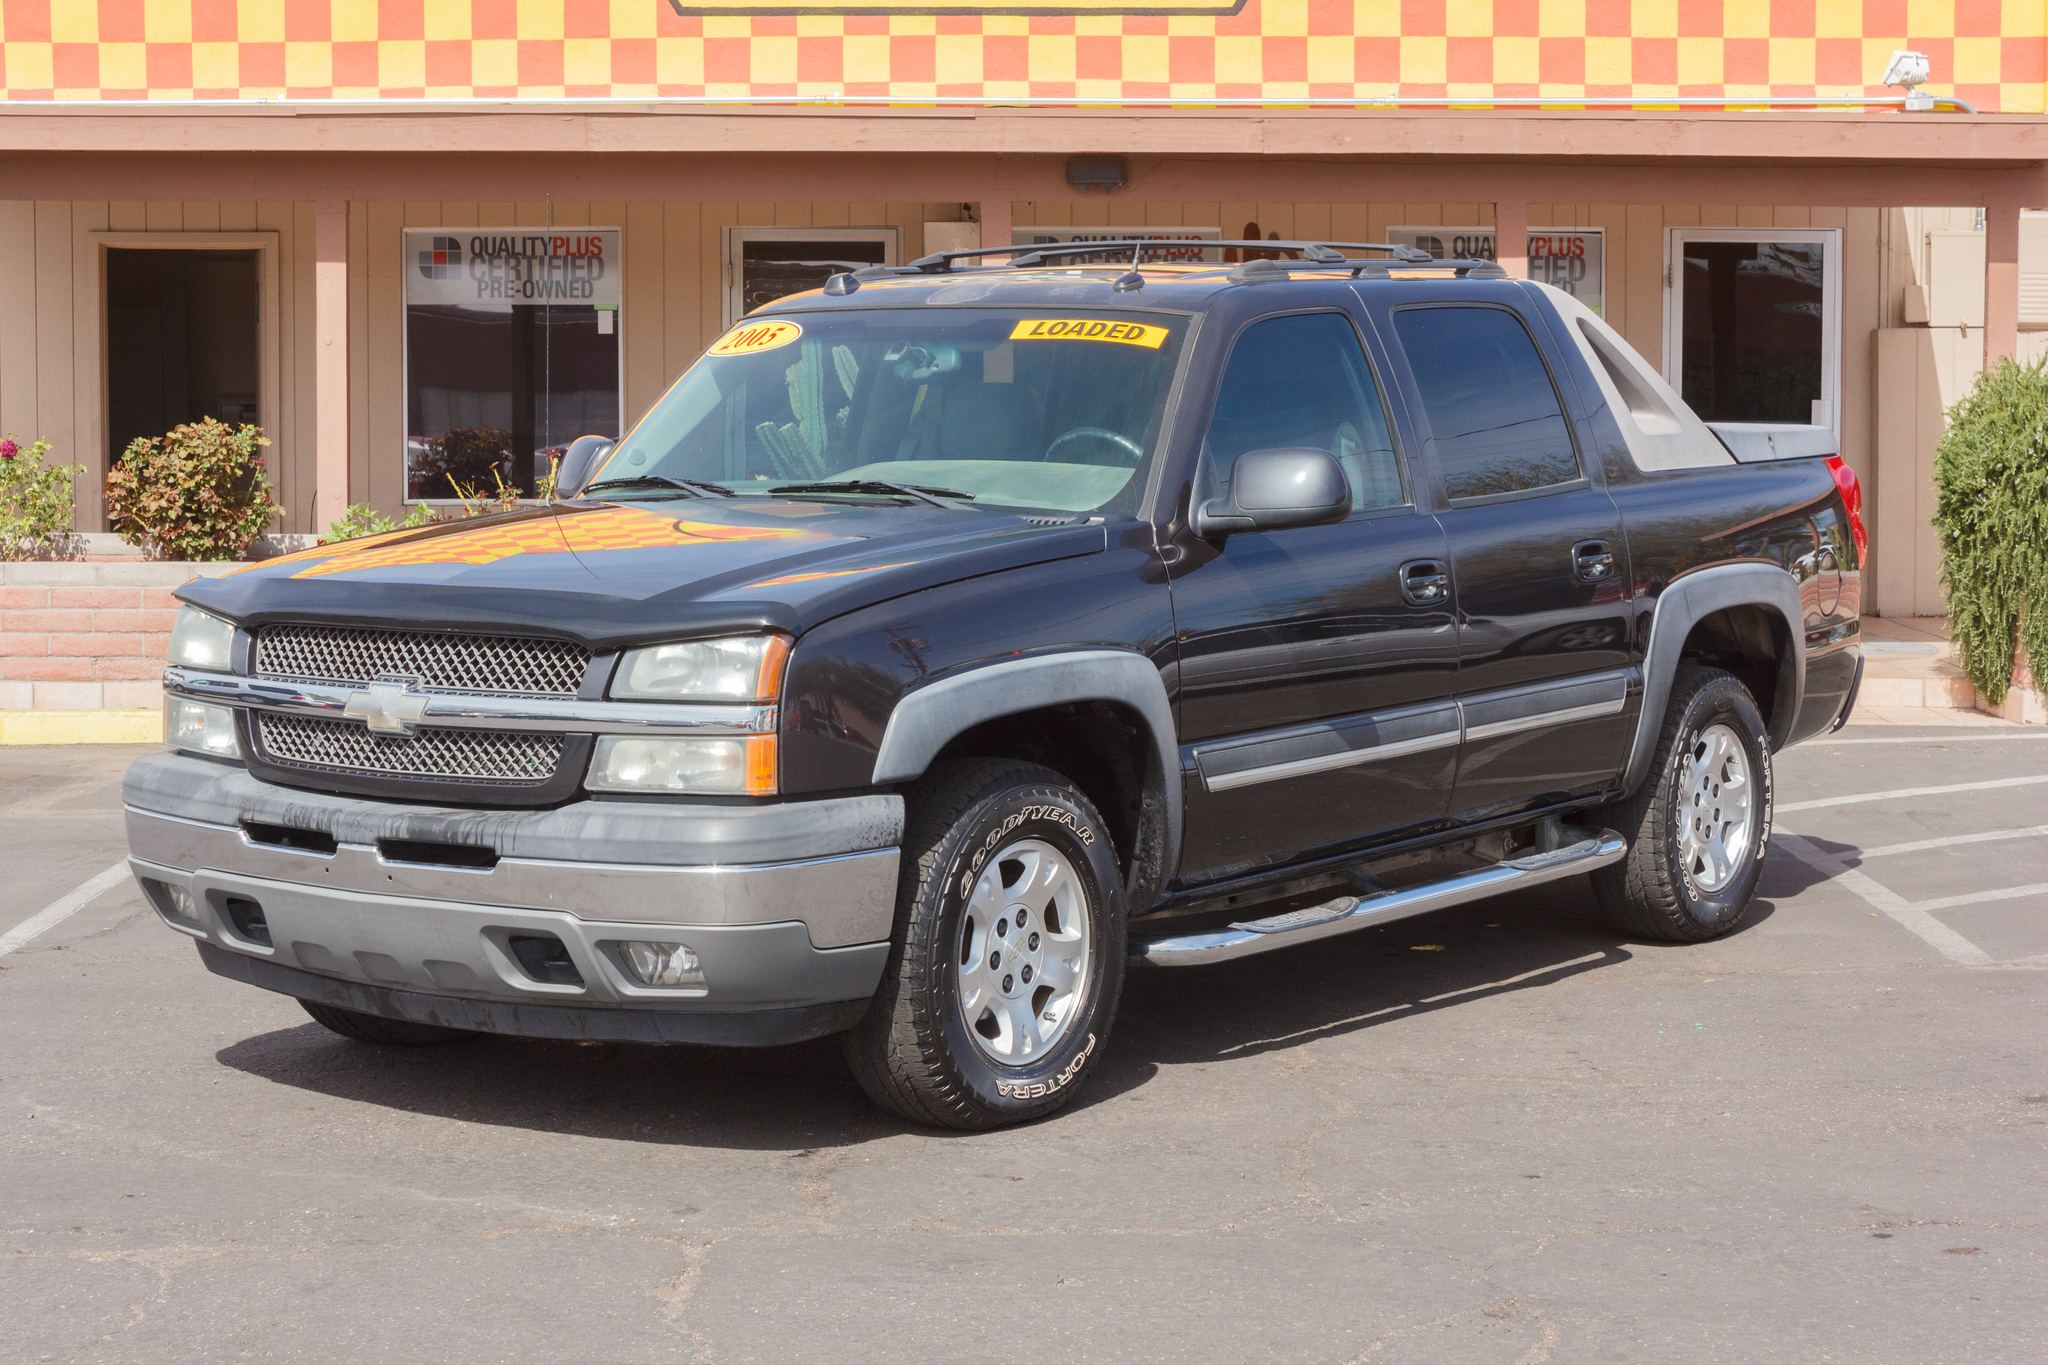 Photo of 2005 Chevrolet Avalanche 2WD 1500 Wagon LT Black